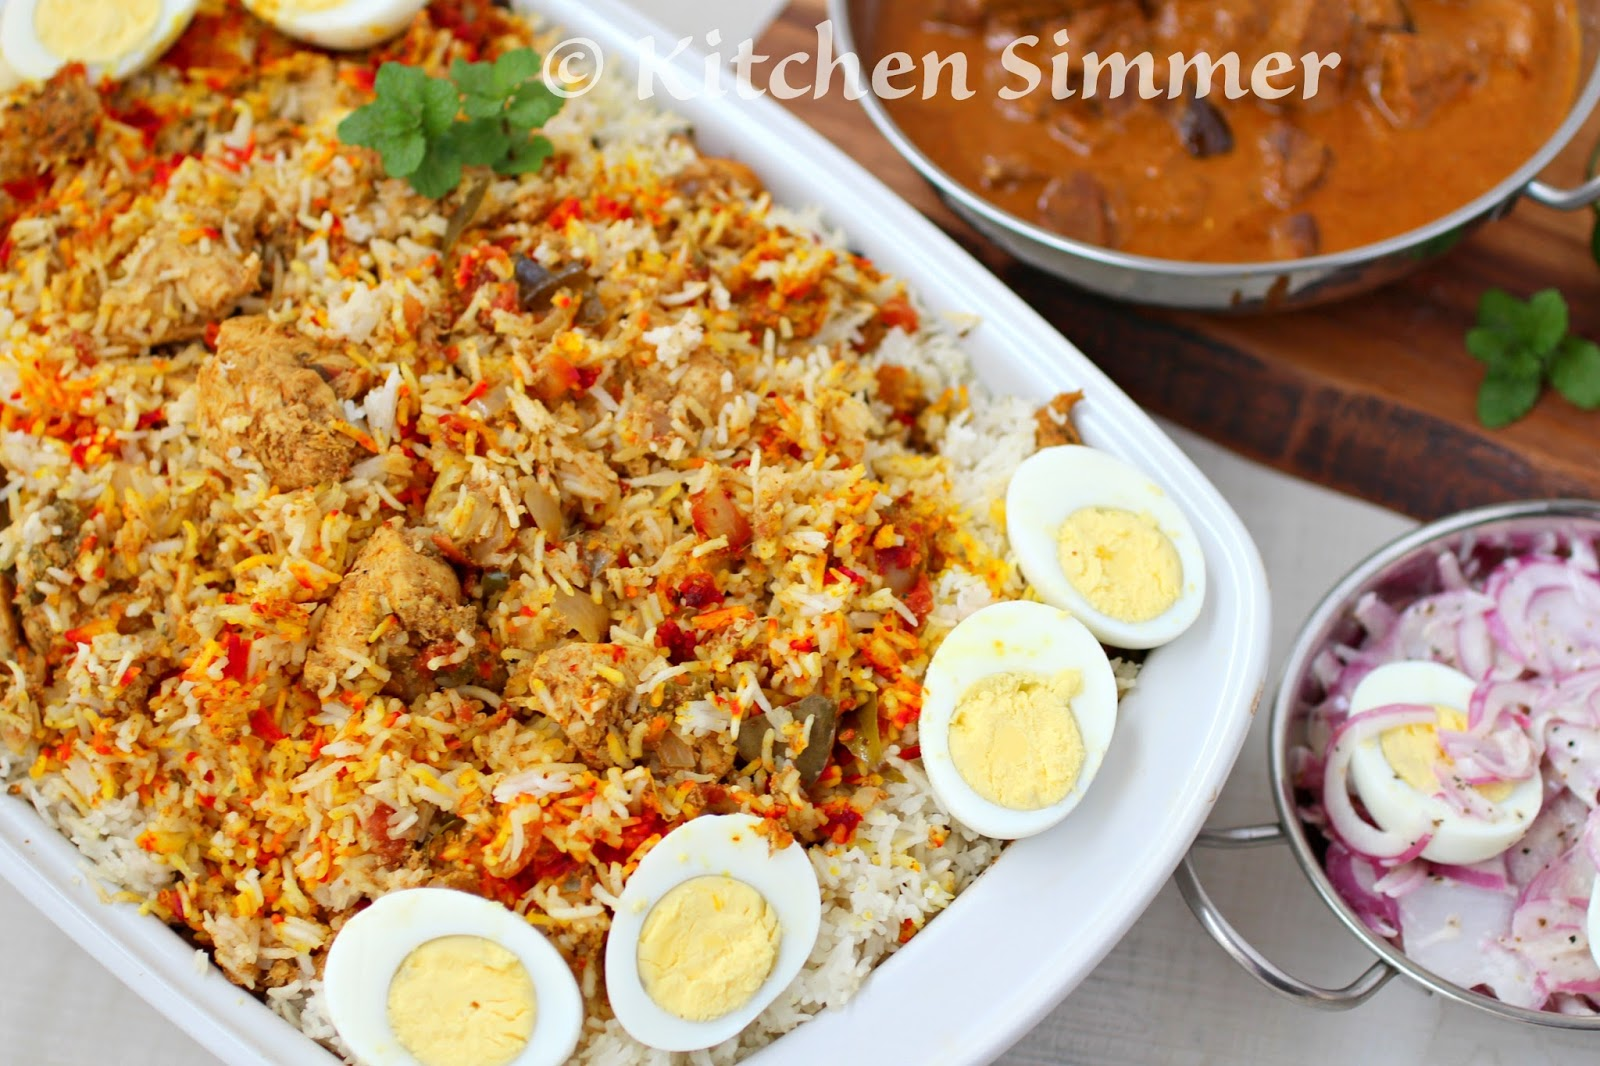 Spicy Chicken Biryani Is A Very Flavorful And Aromatic Rice And Chicken  Dish That Feeds A Crowd In Style My Bother And Sister Love To Entertain  With A